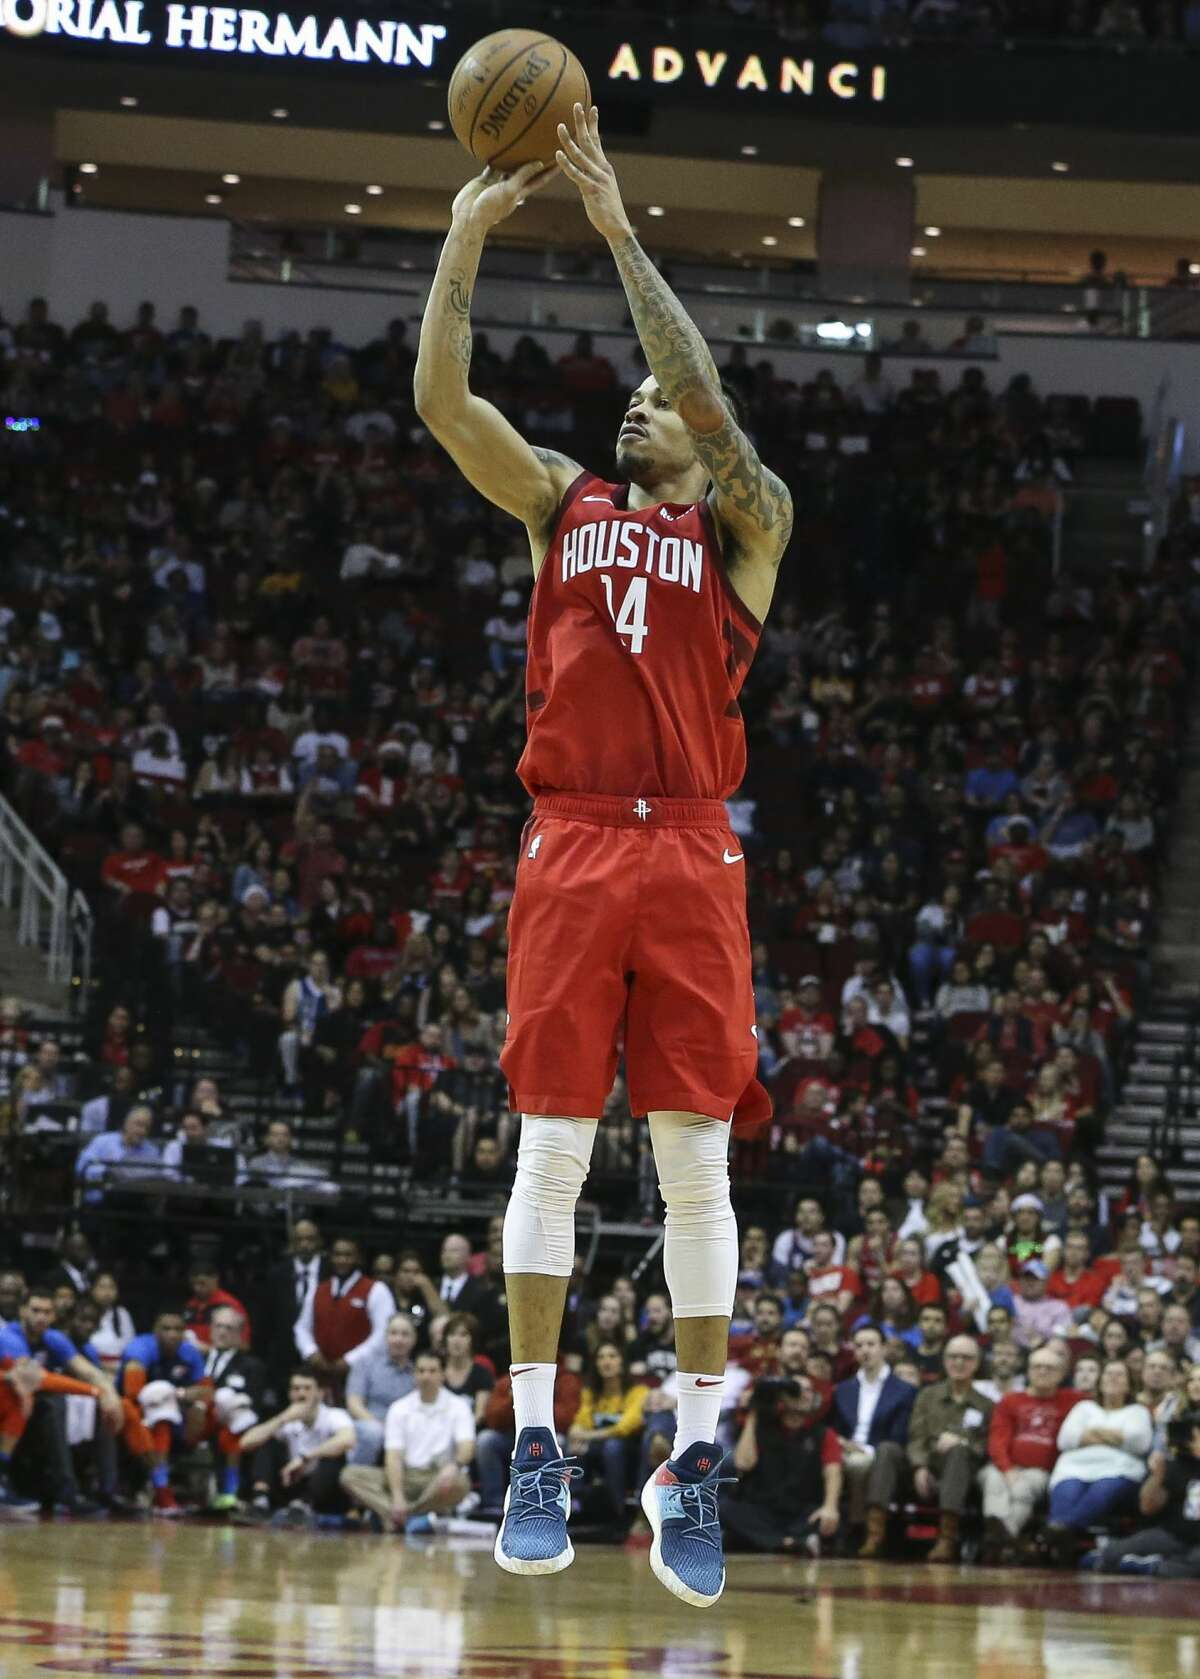 Houston Rockets guard Gerald Green (14) aims for a three point basket during the second quarter of the NBA game against the Oklahoma City Thunder at Toyota Center on Tuesday, Dec. 25, 2018, in Houston.